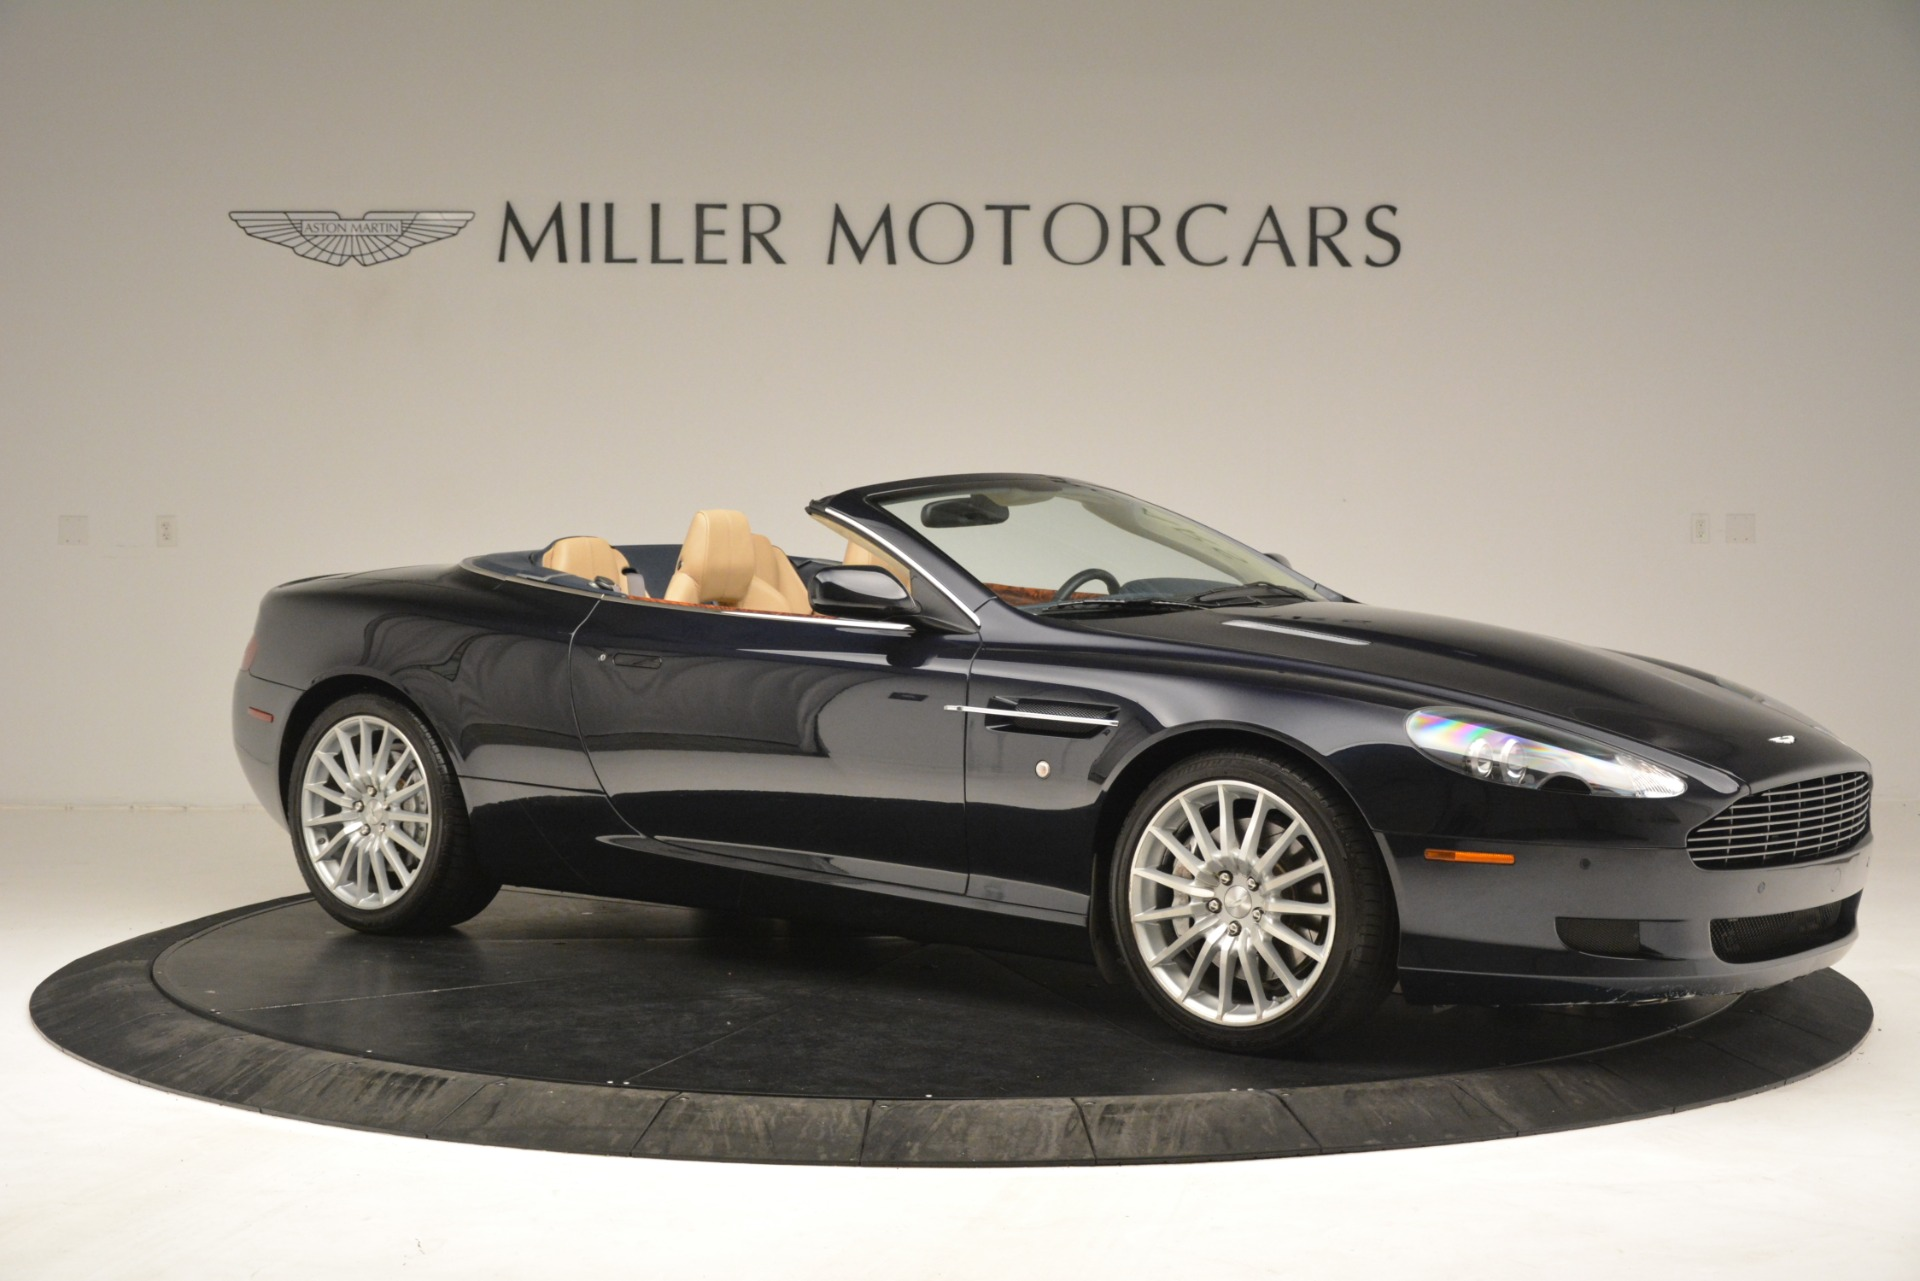 Used 2007 Aston Martin DB9 Convertible For Sale In Greenwich, CT 3291_p10